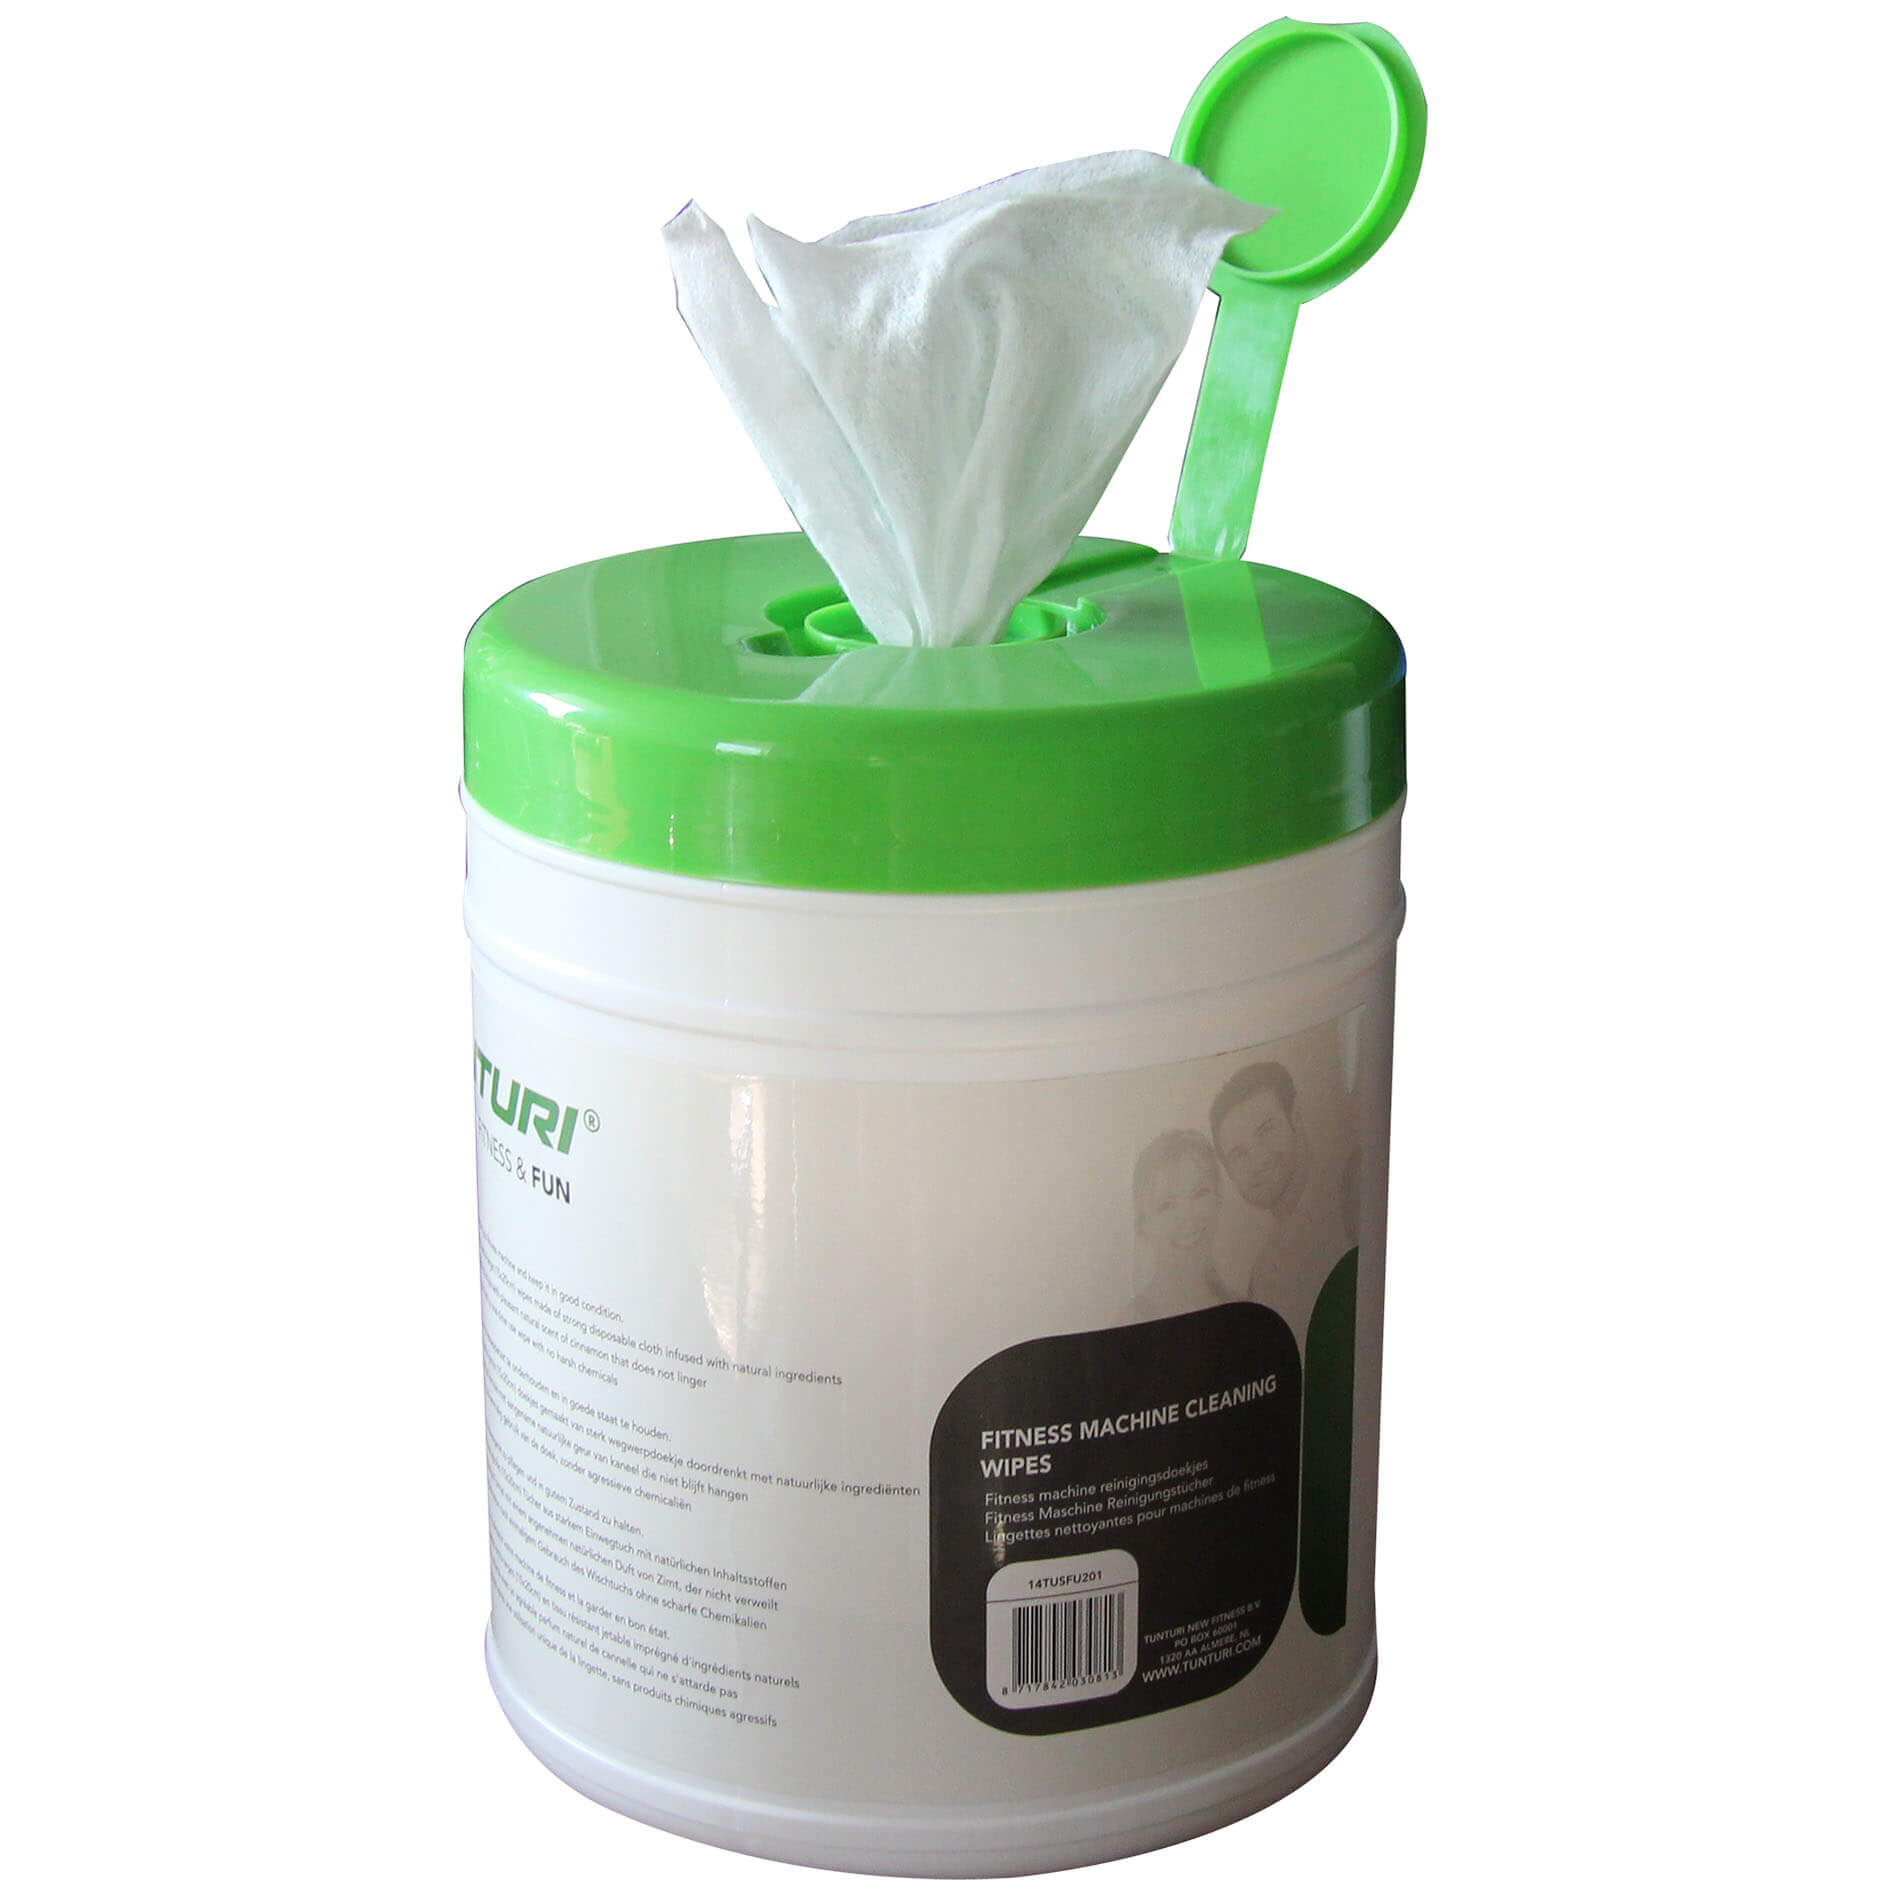 Fitness Machine Cleaning Wipes 160pcs/Bucket